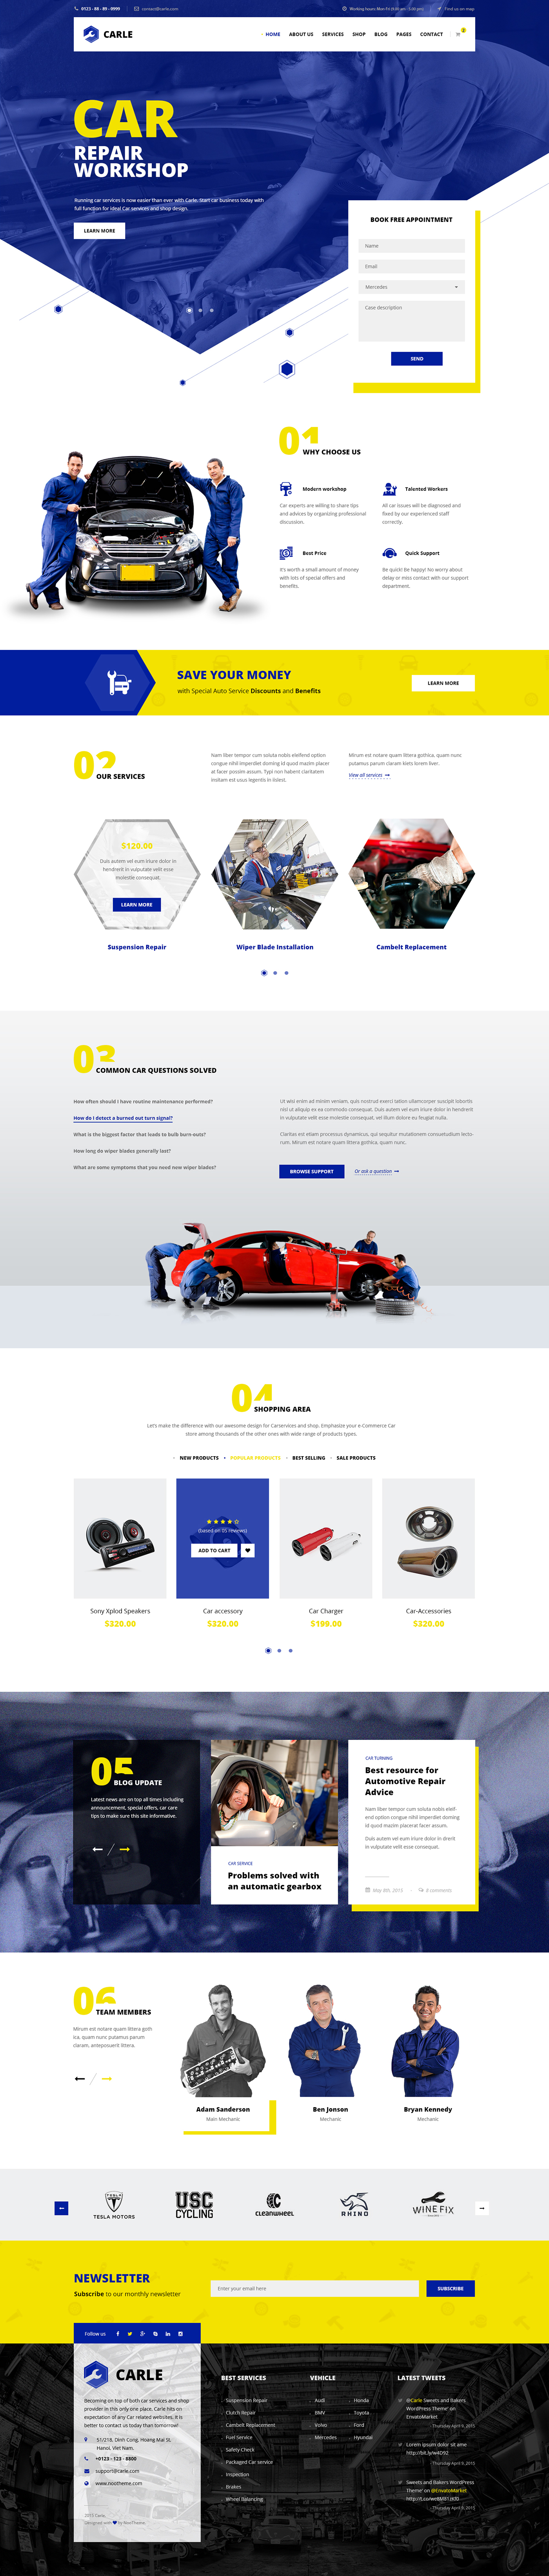 The template was built specifically for Car services include engine repair, maintenance, inspections, oil changes, brakes, tires and more with Shop integrated to sell any car related equipments.6 Homepage versions with 4 bonus headers having different a…